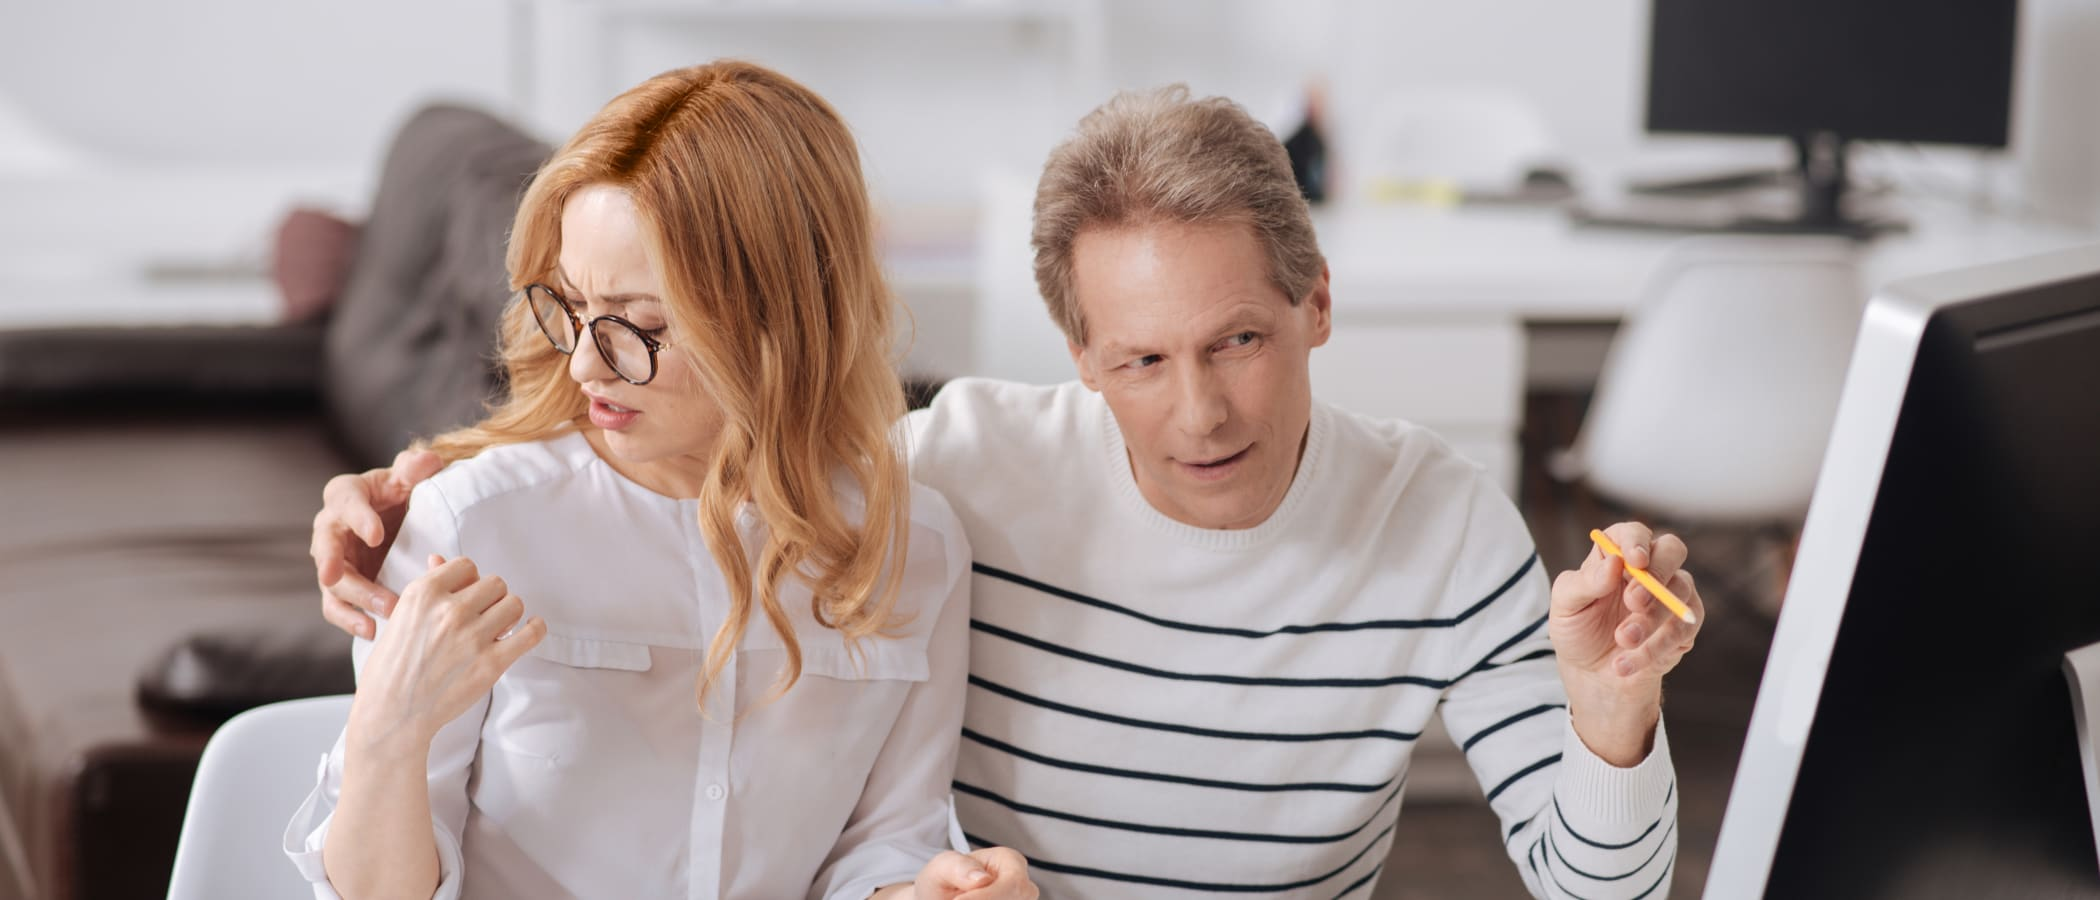 California Employers Should Review Guidance on Handling Workplace Harassment Claims